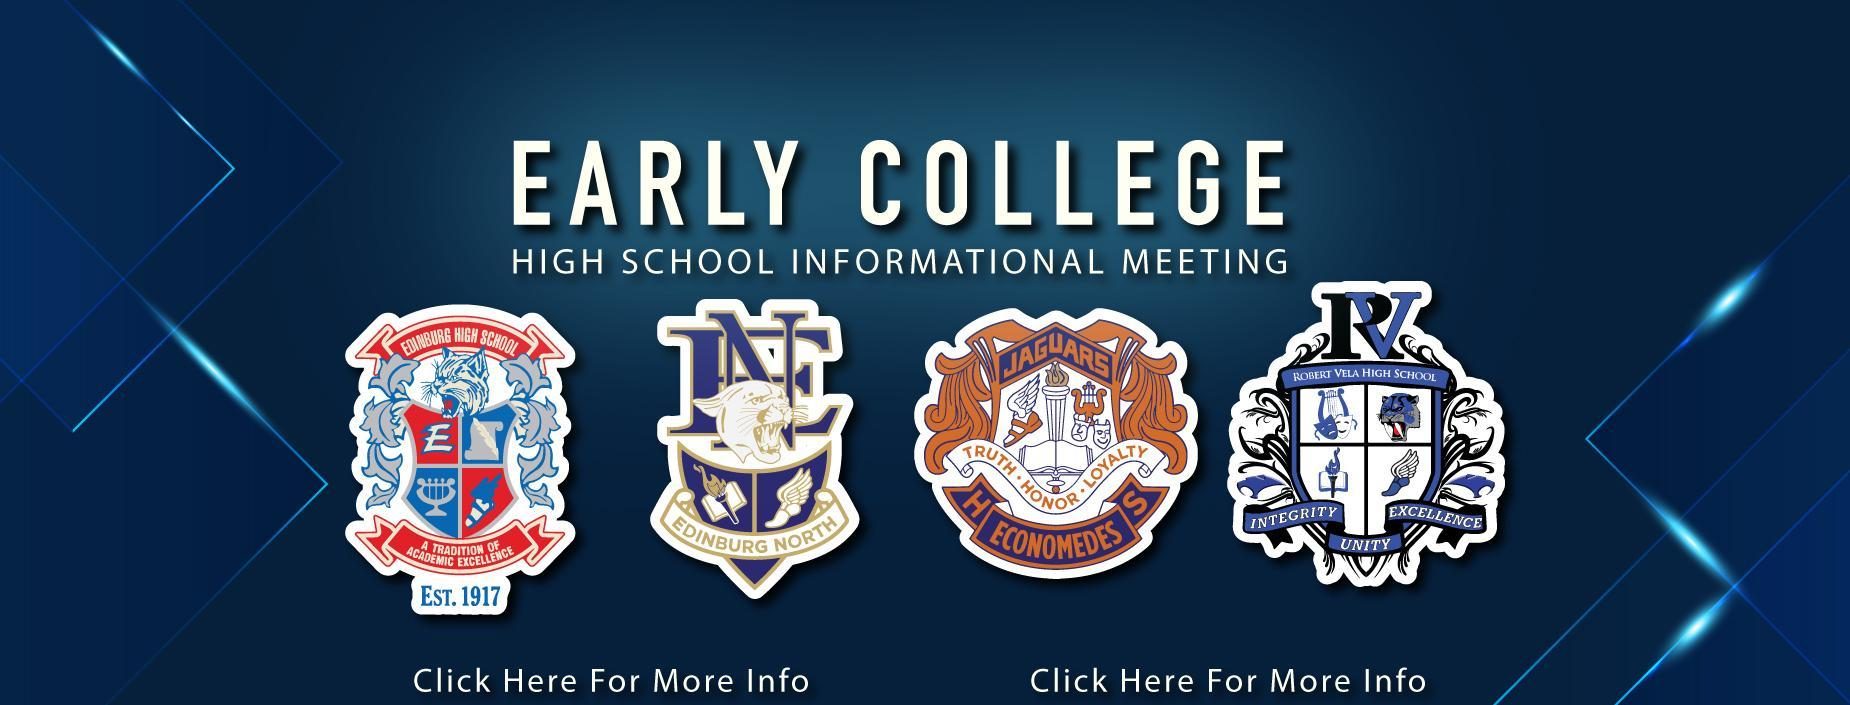 early college high school information meeting.  click for more info.